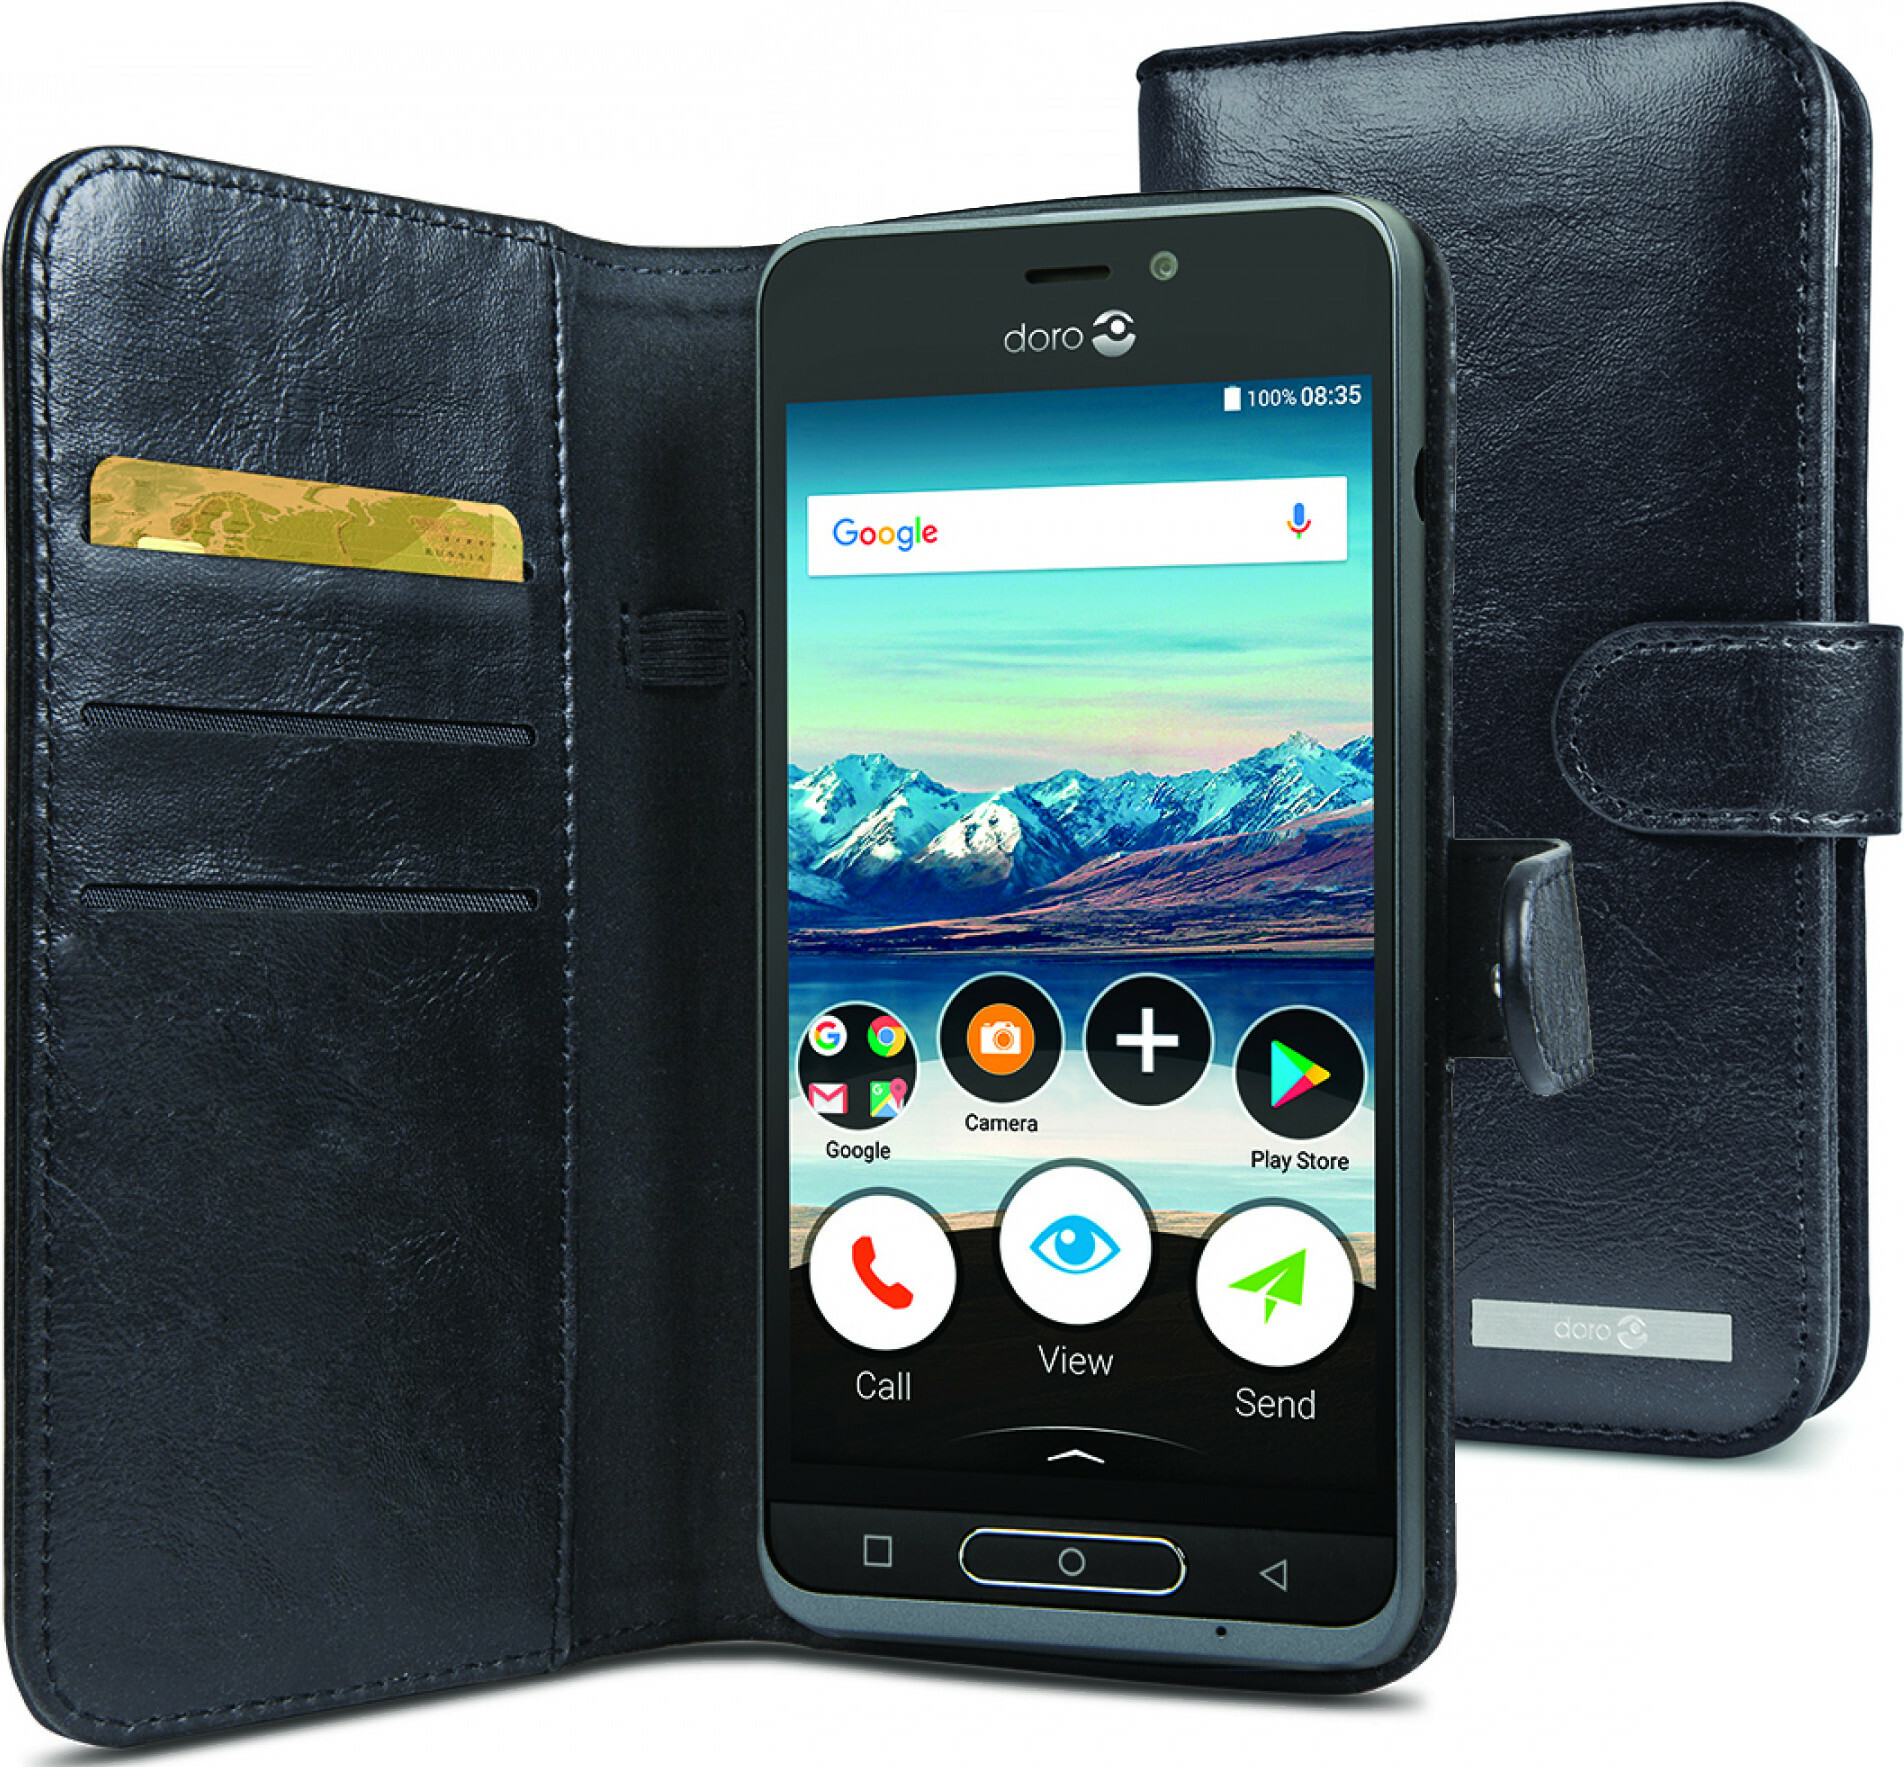 Doro 8035 Wallet Case Black